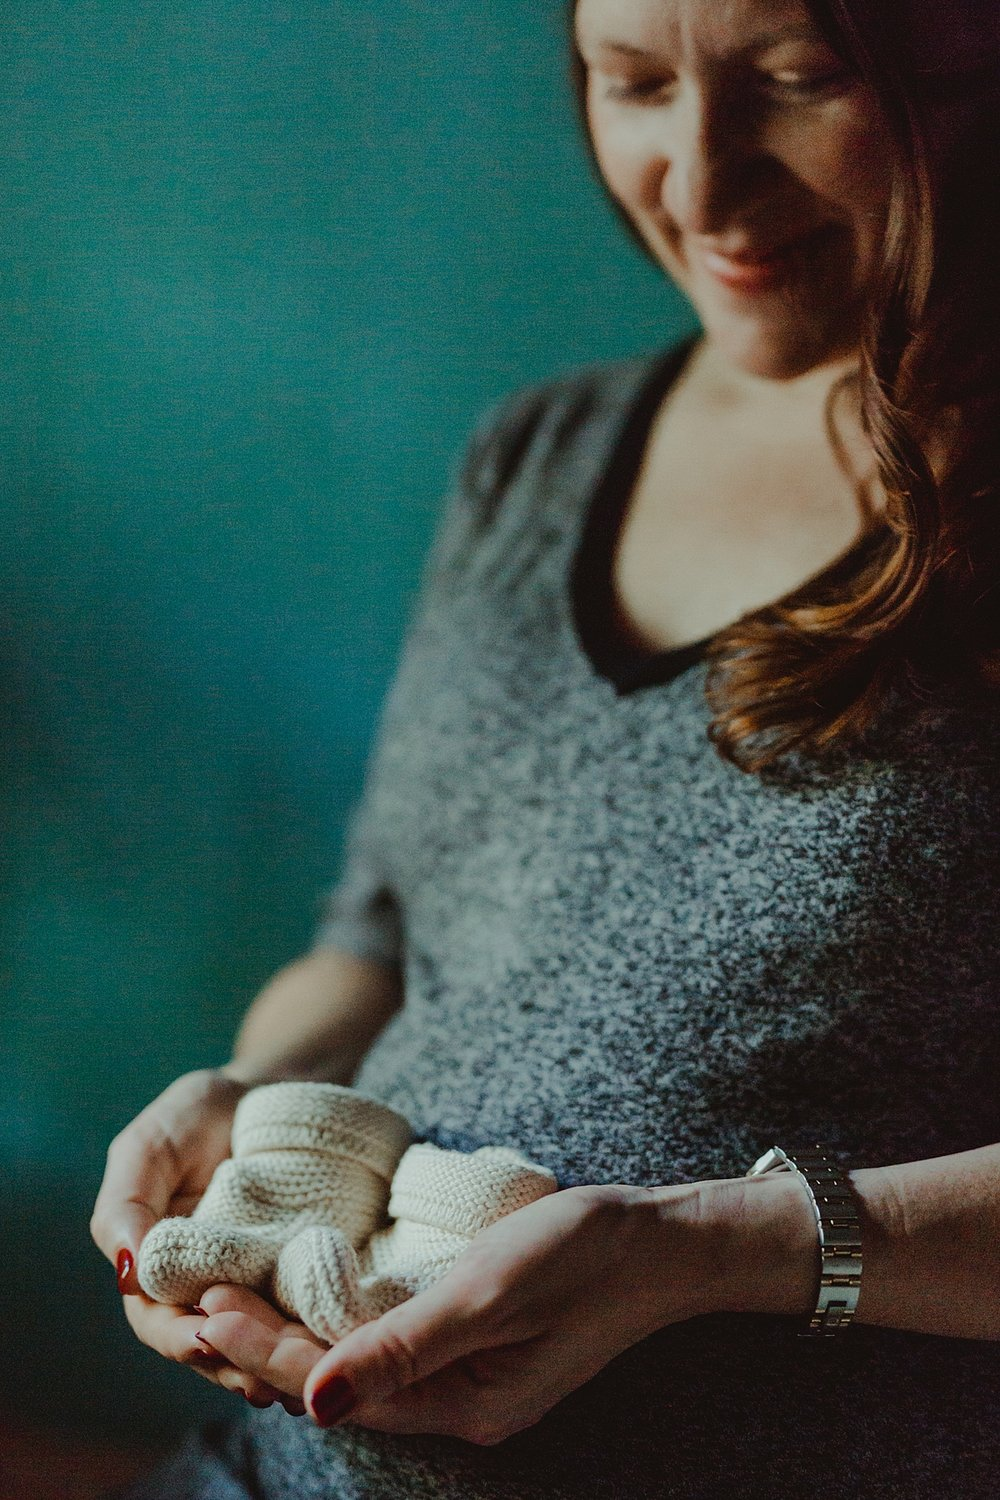 close up portrait of expecting mother holding white knitted baby shoes in front of her pregnant belly and looking down adoringly at the shoes during maternity photo session. photo by nyc family and newborn photographer krystil mcdowall